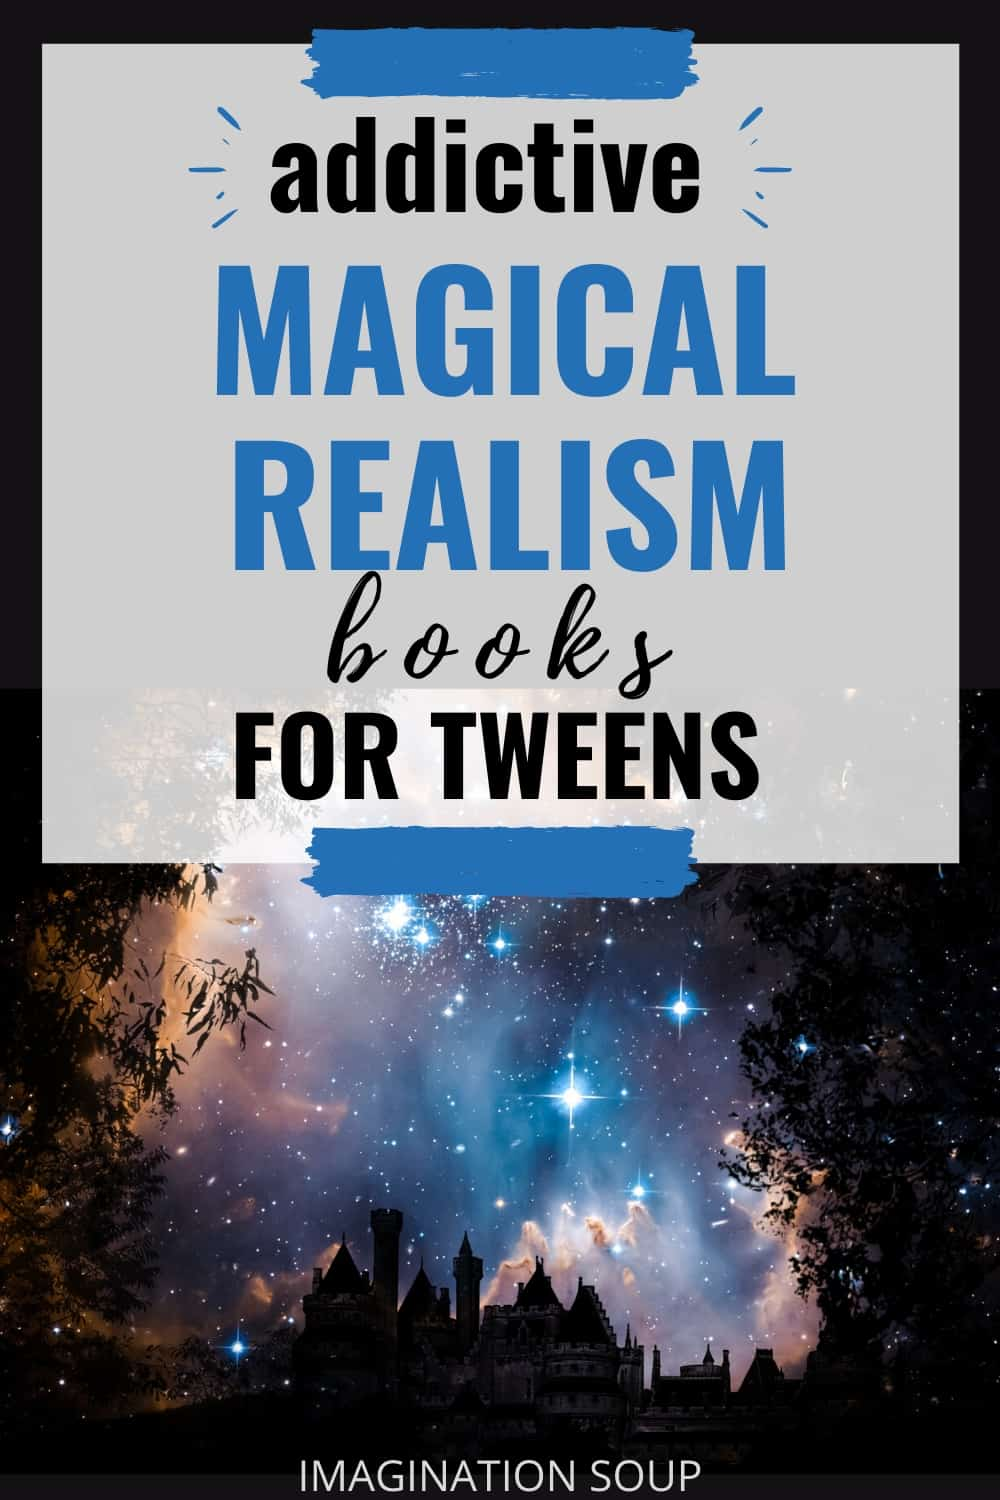 the best magical realism books for tweens ages 8 to 12